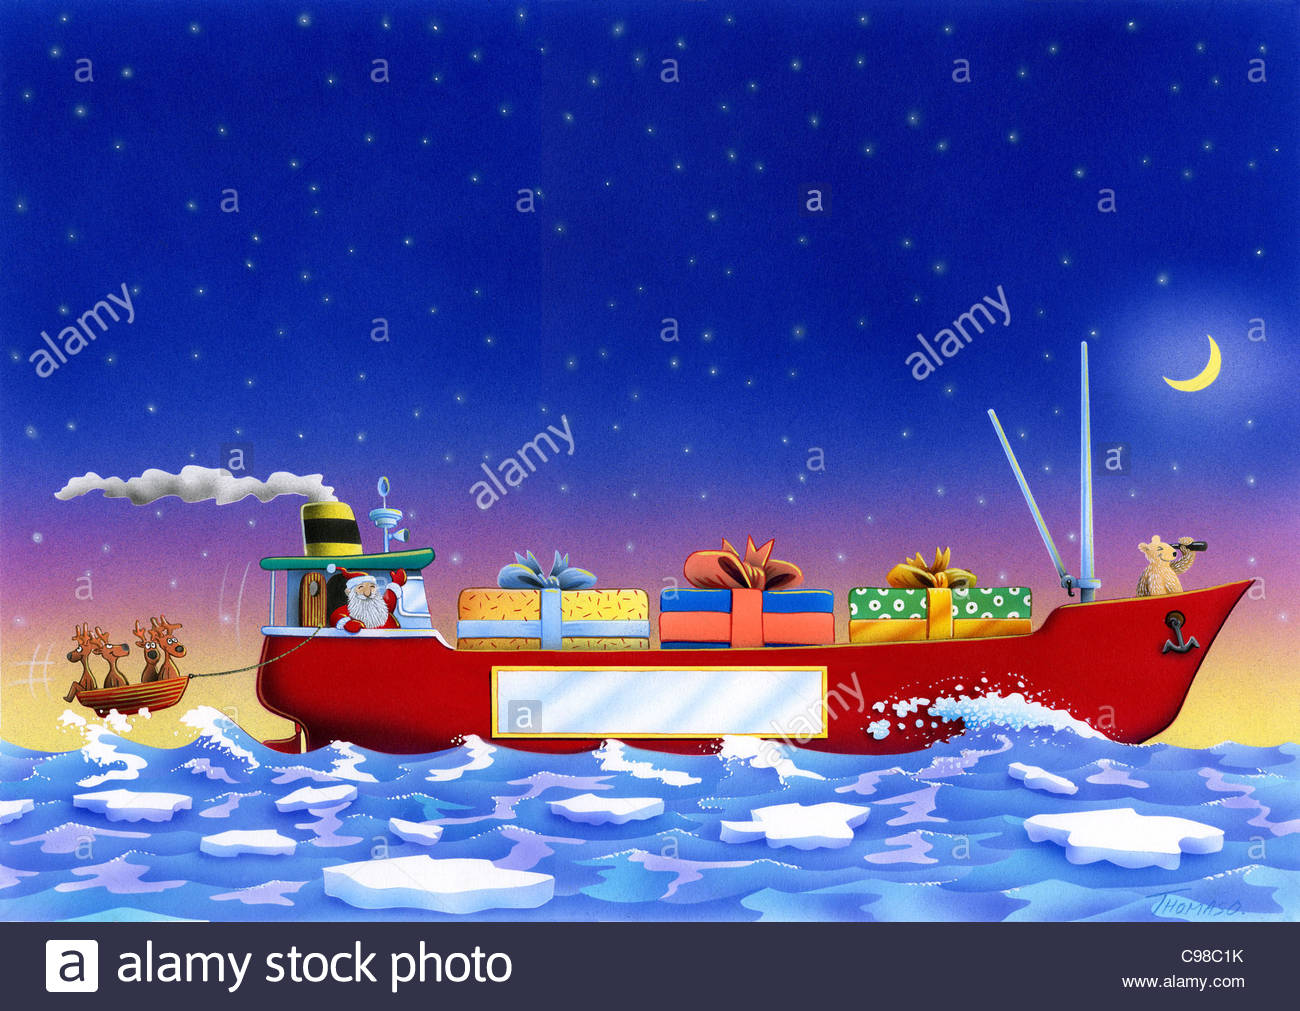 Christmas Gifts On Container Ship Christmas Christmas